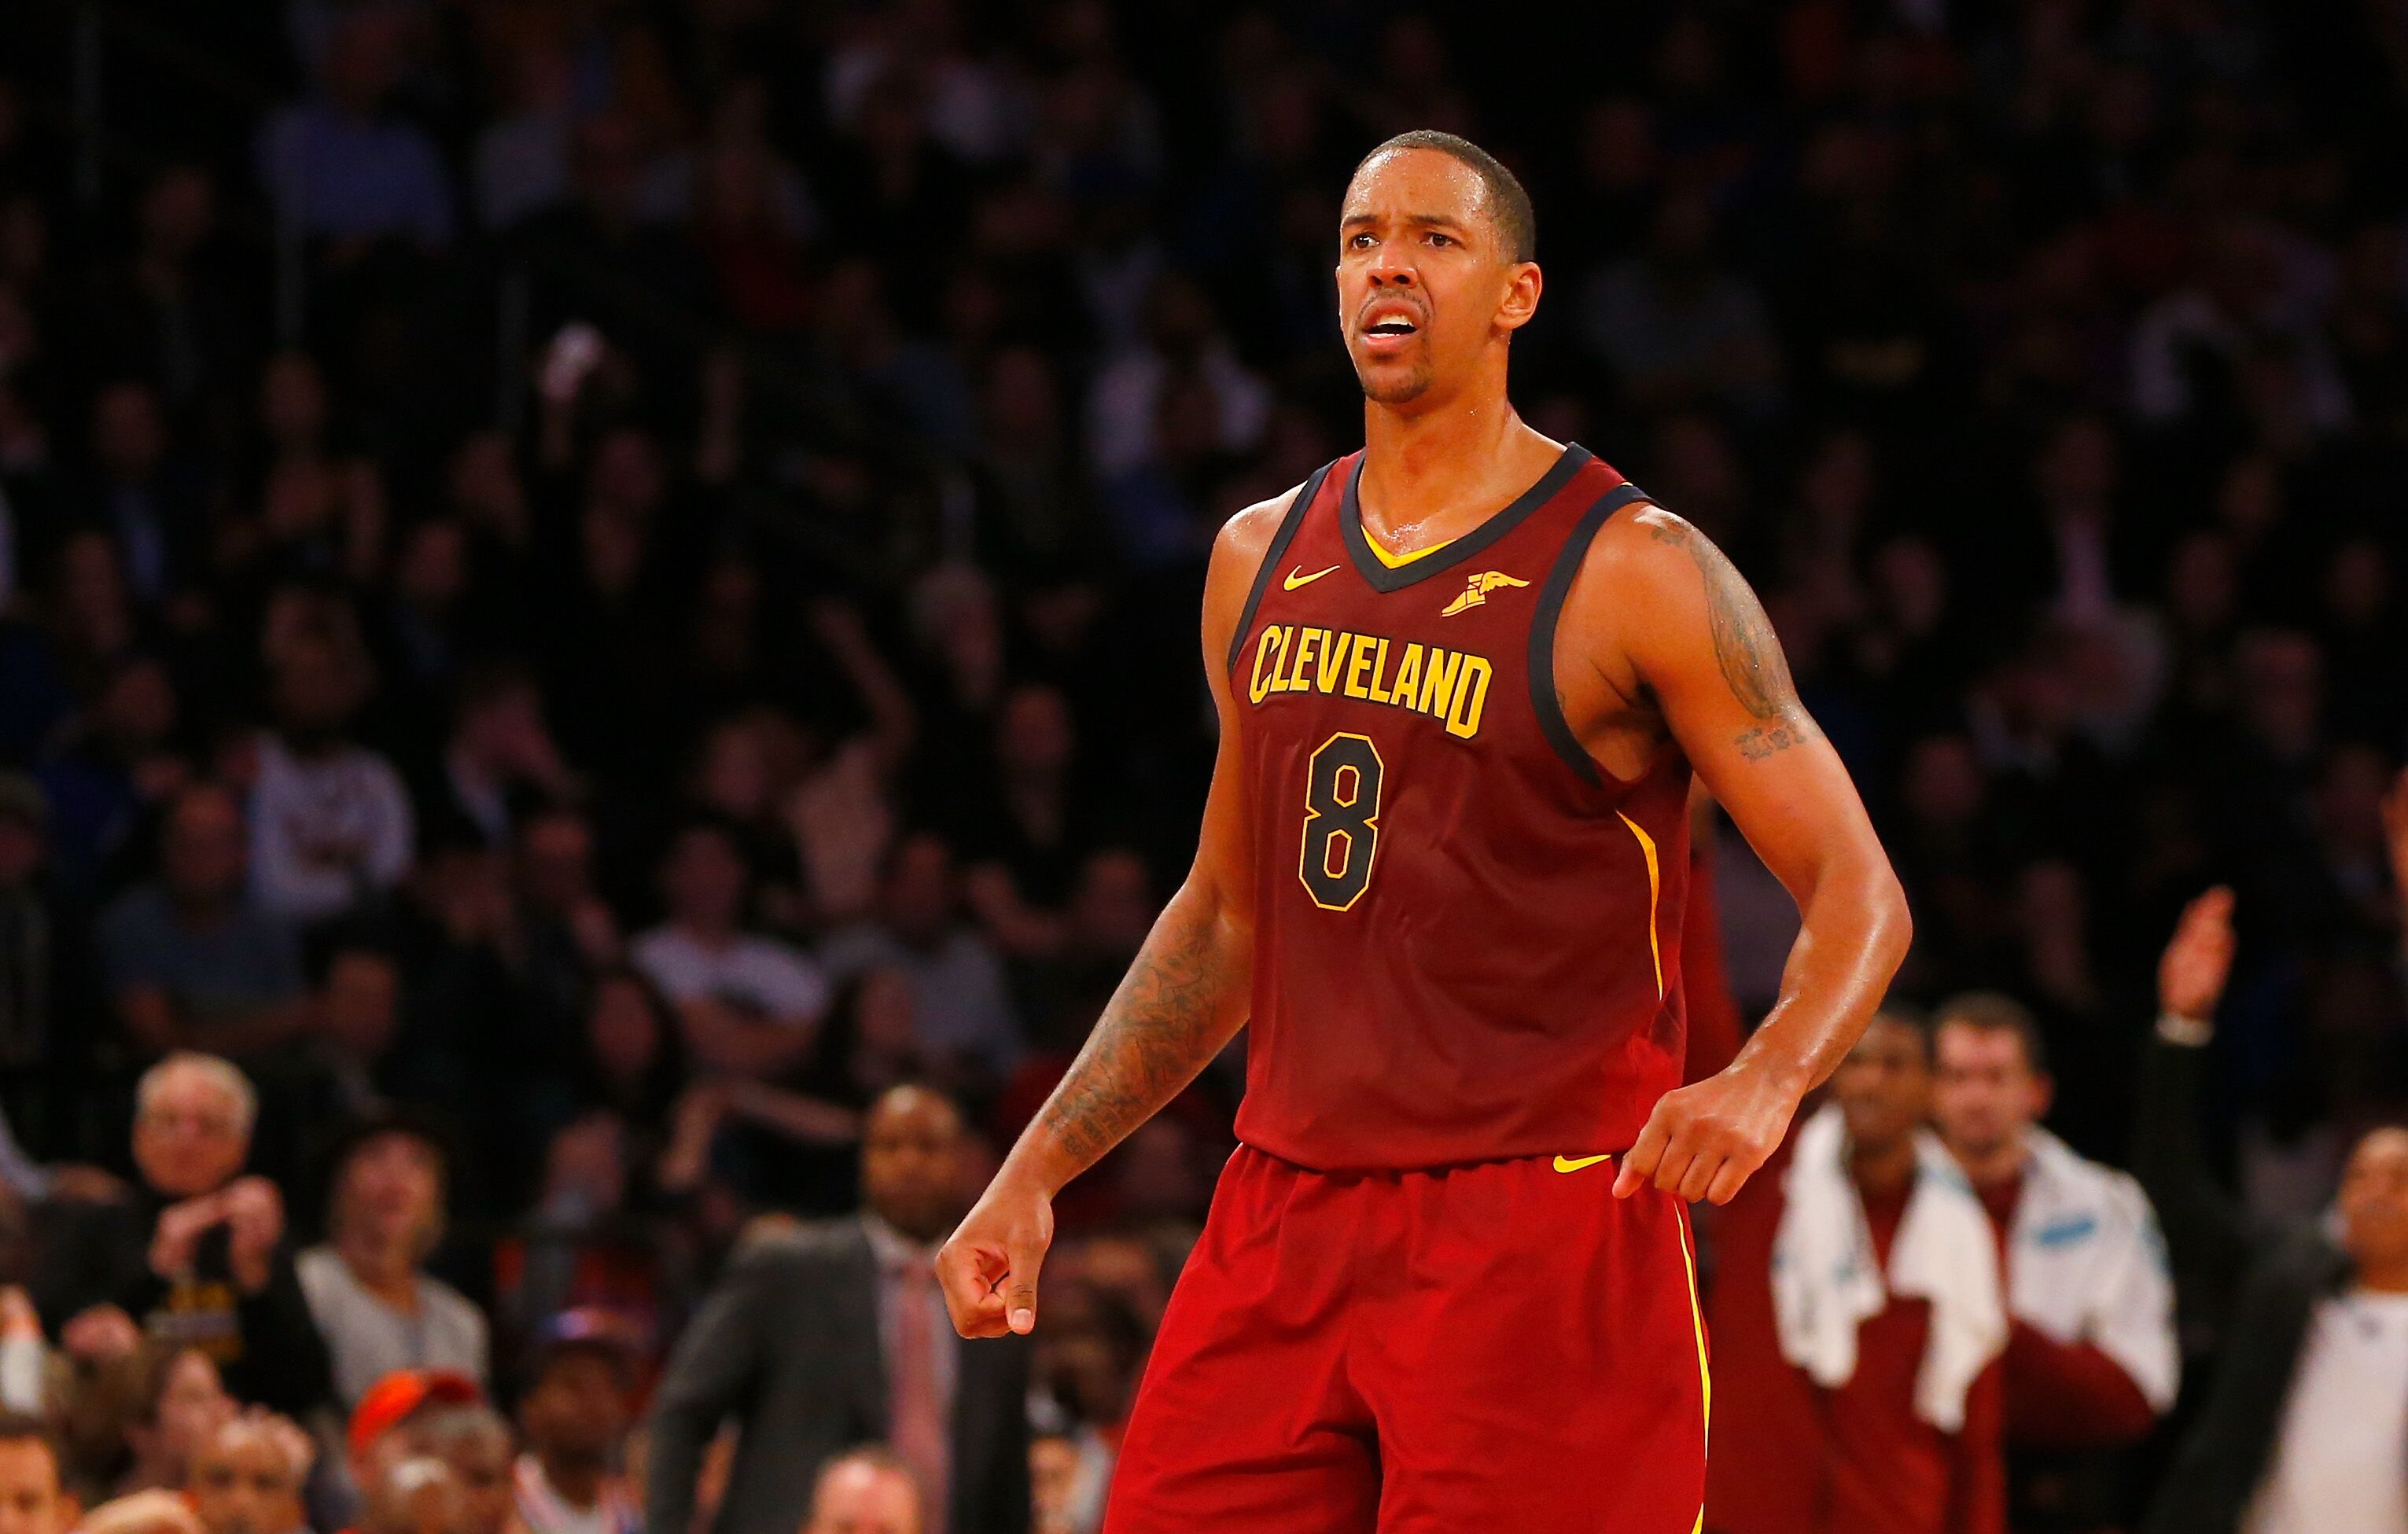 Cleveland Cavaliers: Frye's professionalism is refreshing